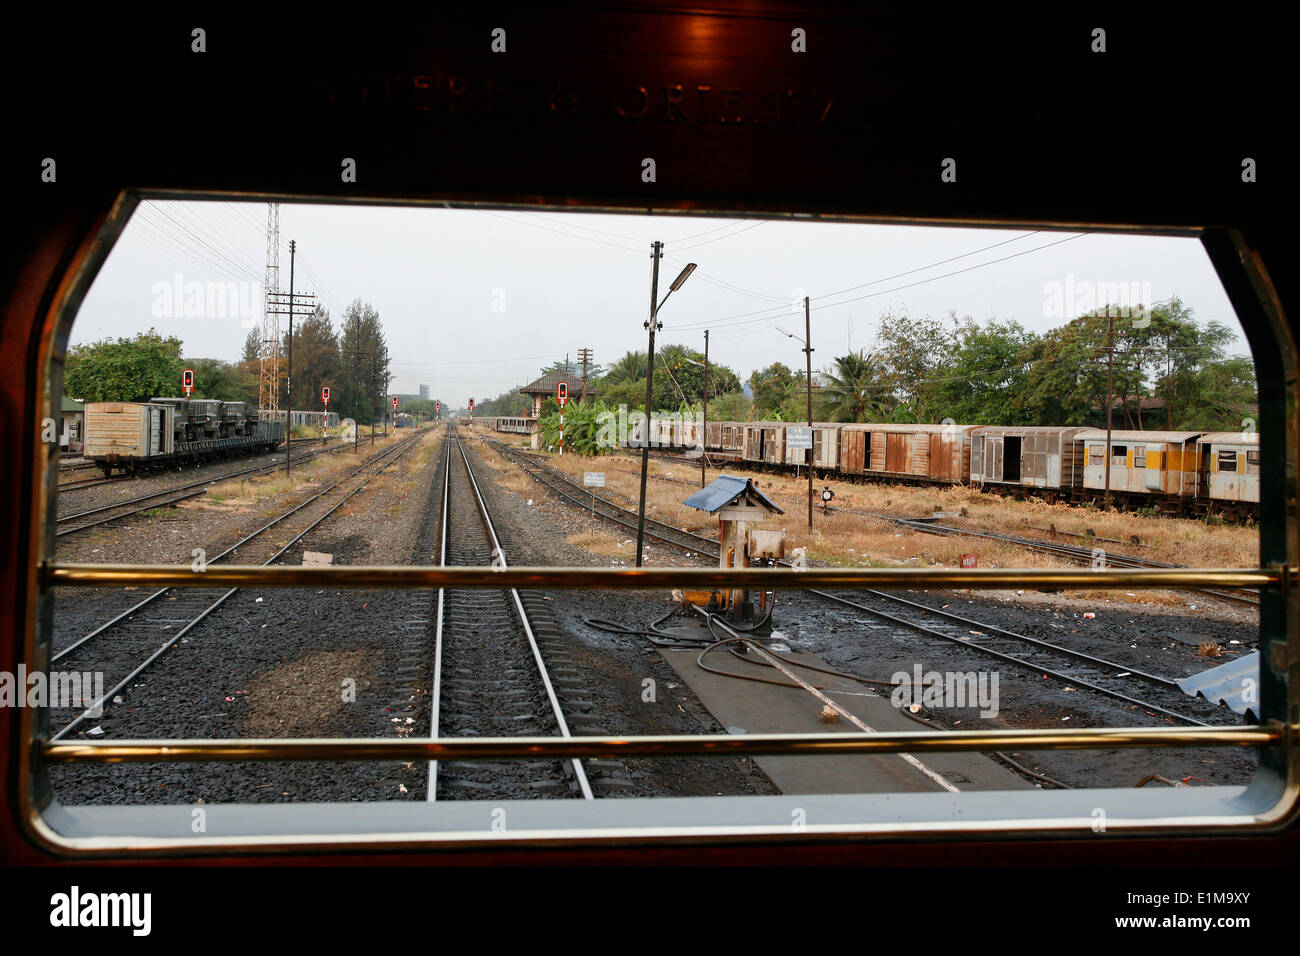 View from the Eastern & Oriental Express train - Stock Image